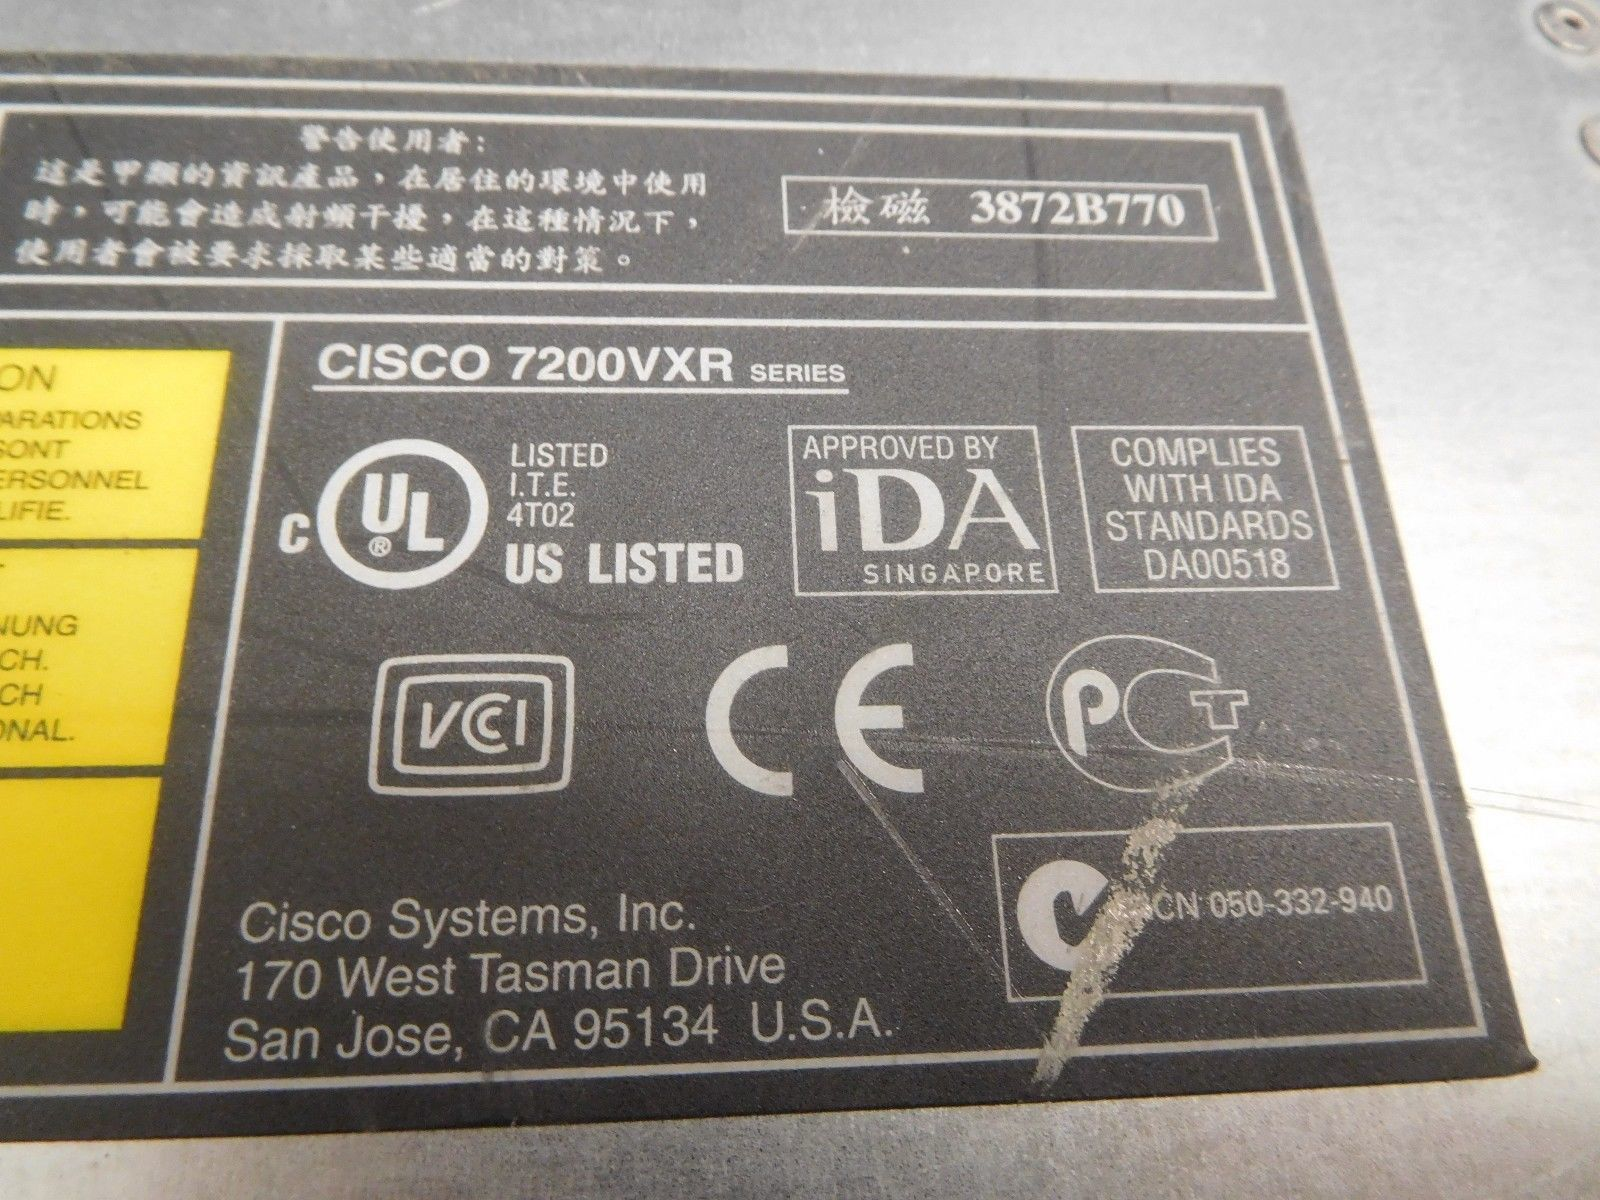 Cisco 7200 VXR 7206VXR Router w/ NPE-400 and 19 similar items